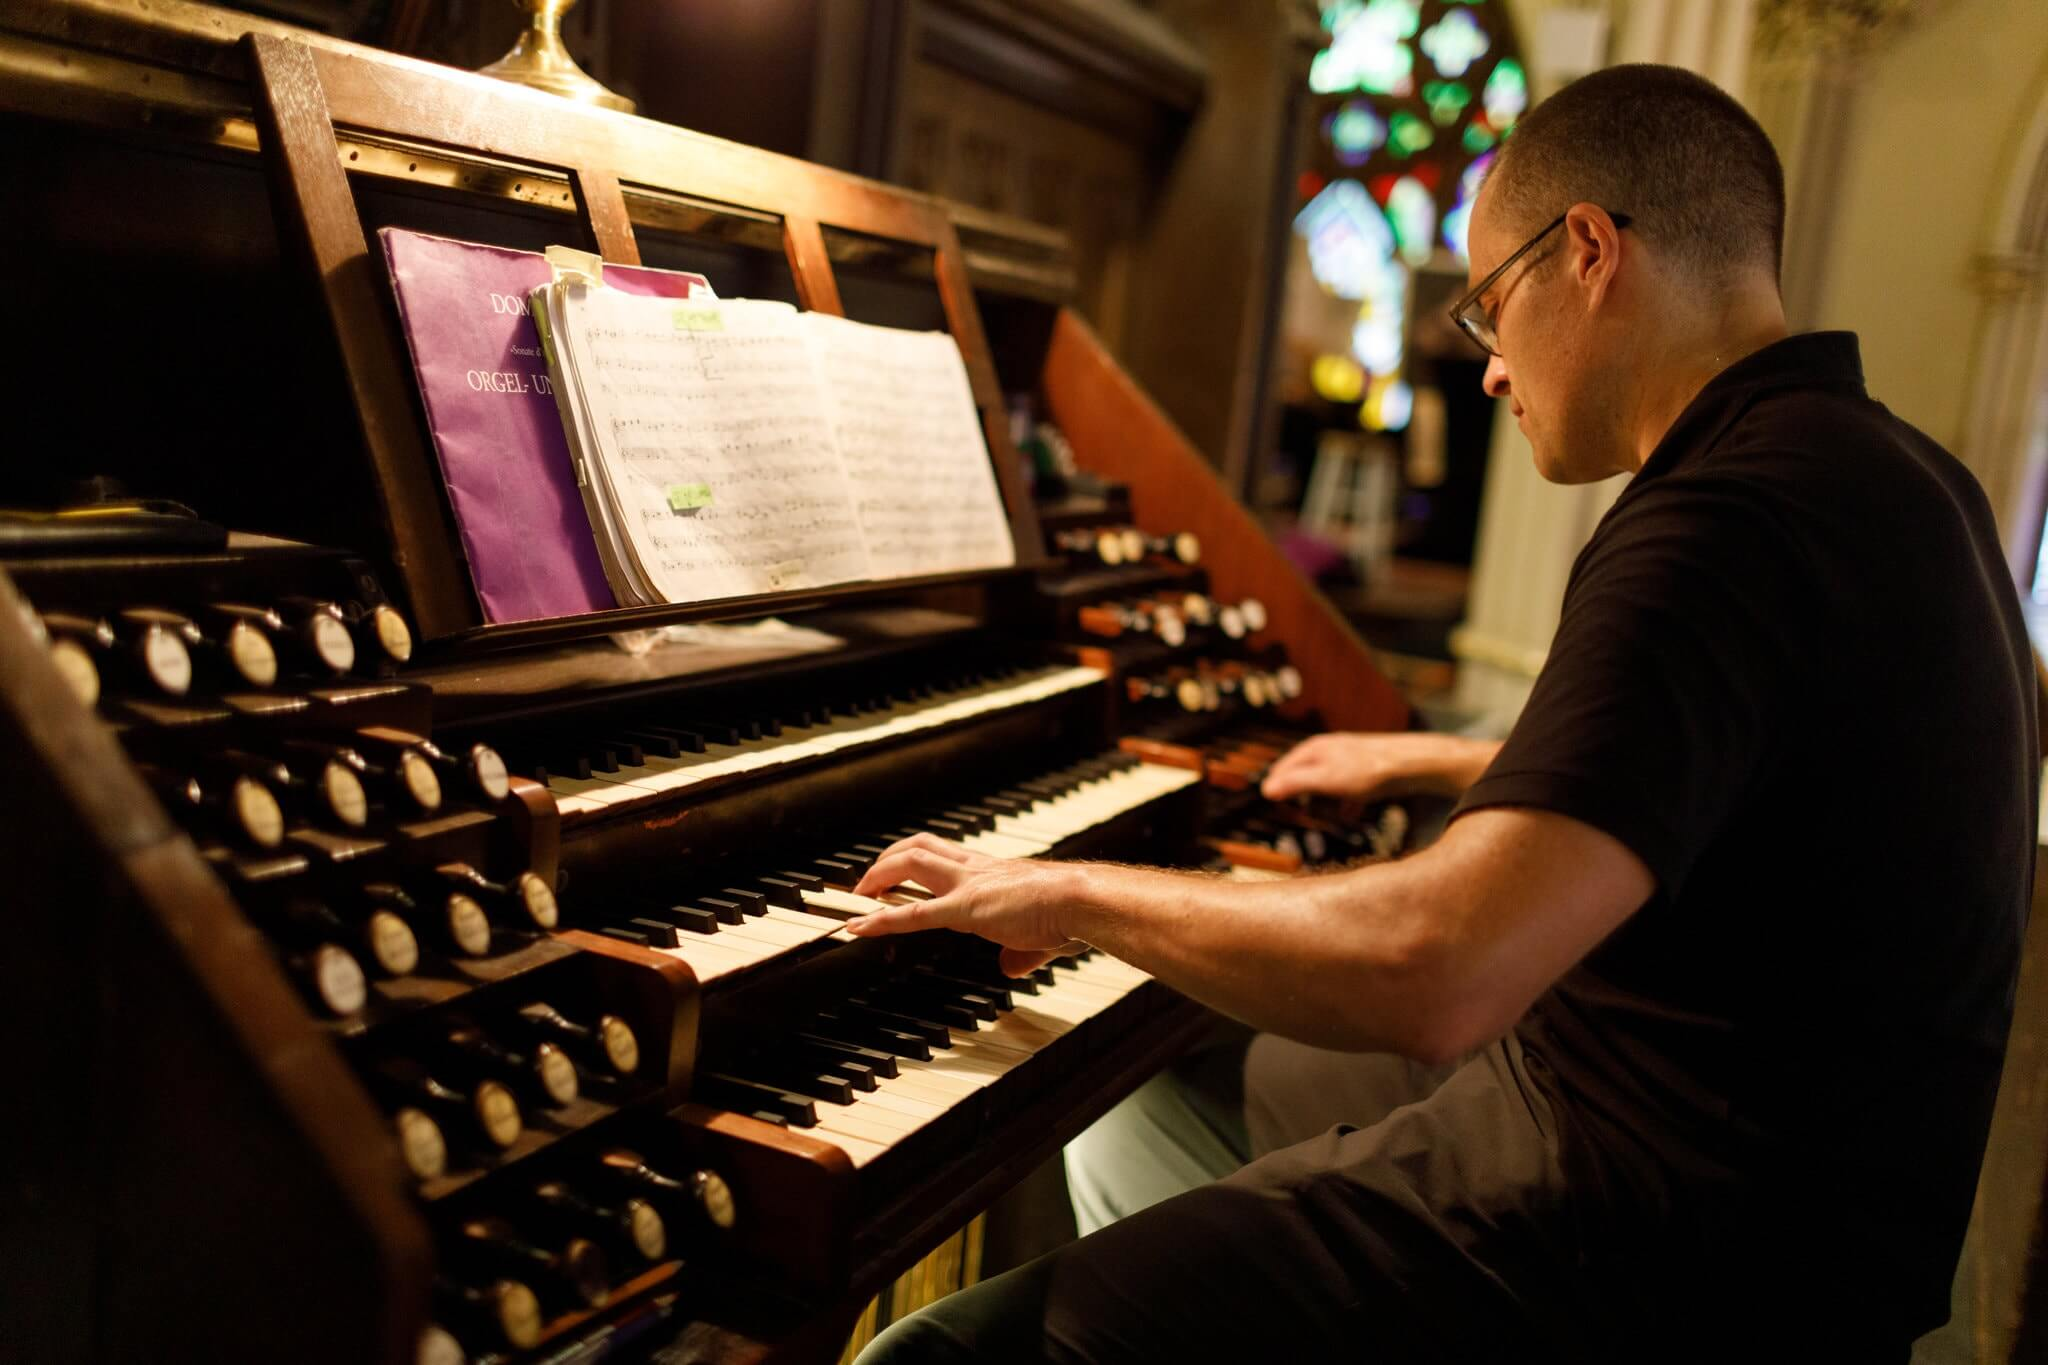 Jared Lamenzo at the Erben Organ. Photo: Stefano Ukmar for The New York Times